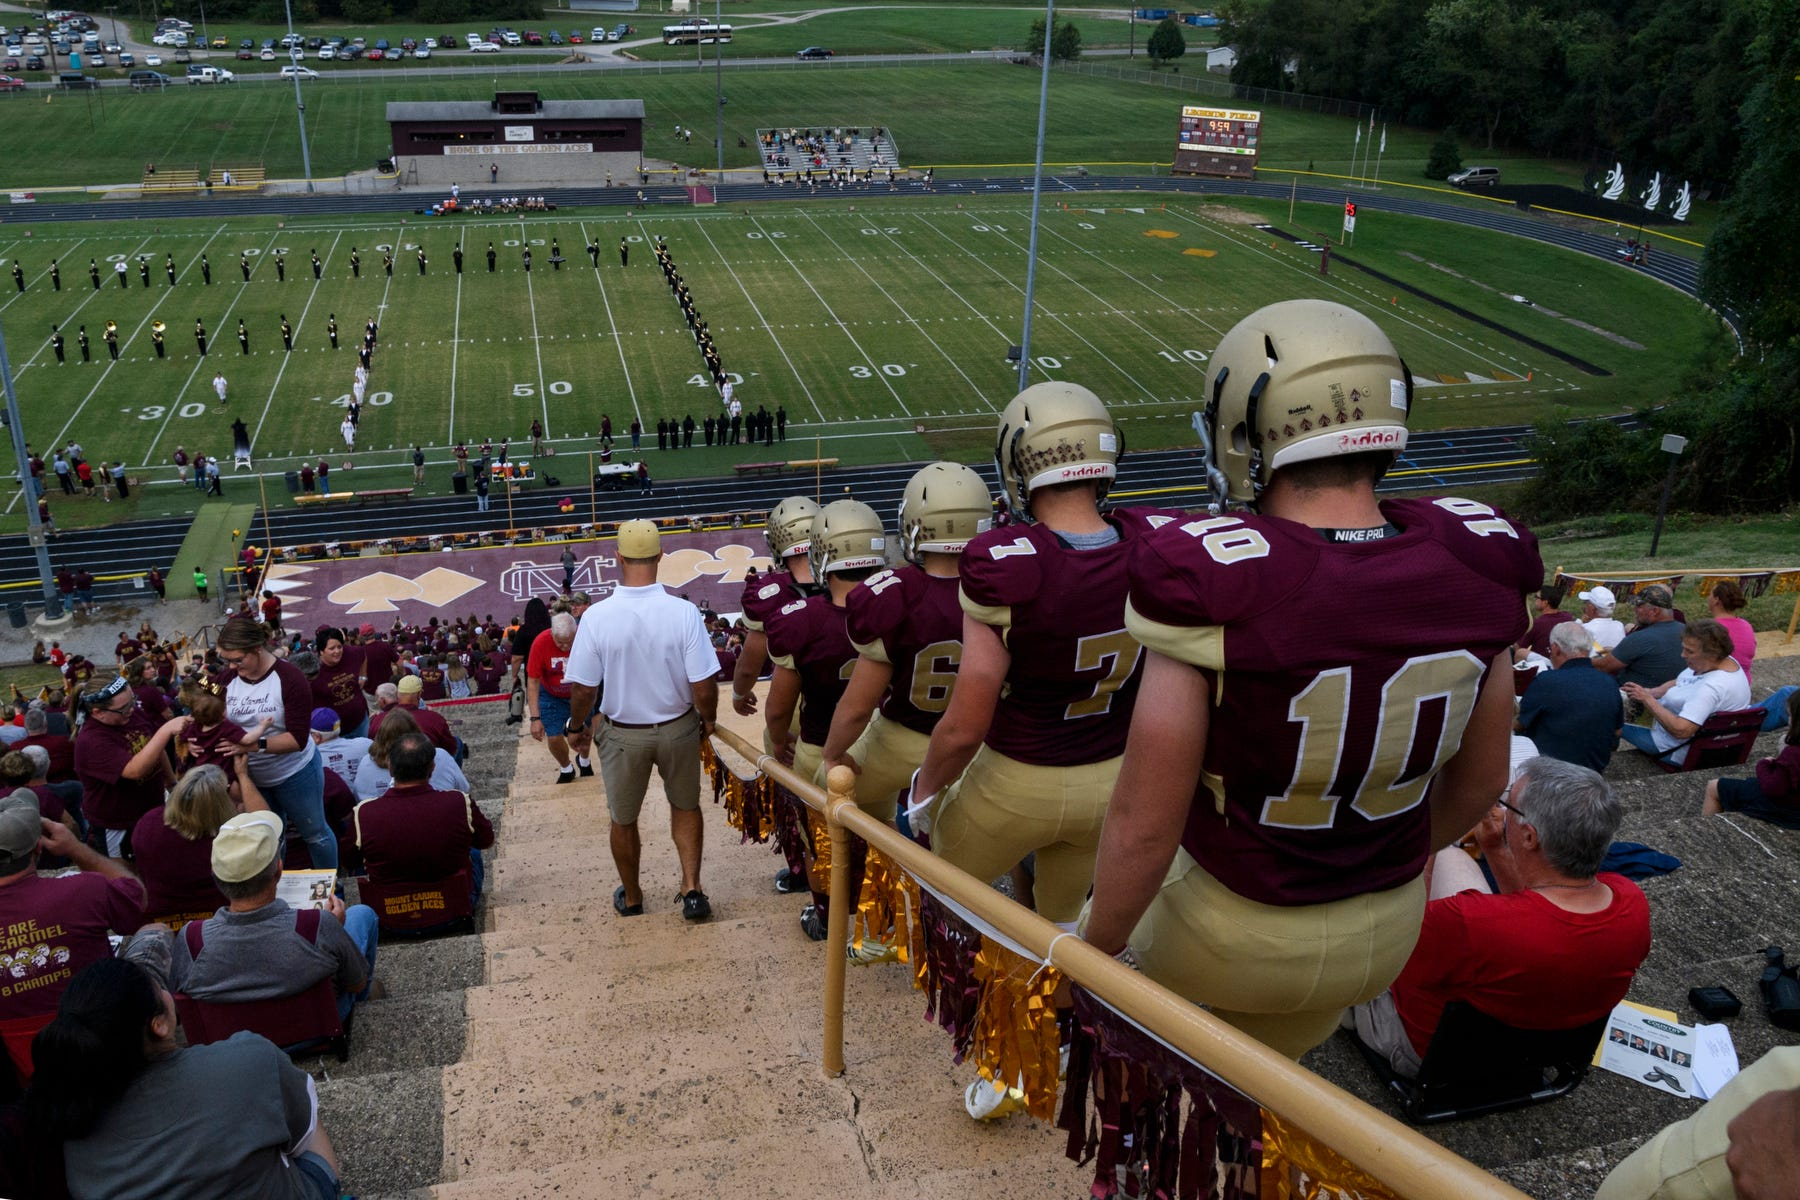 Mount Carmel boasts storied tradition, but changes coming